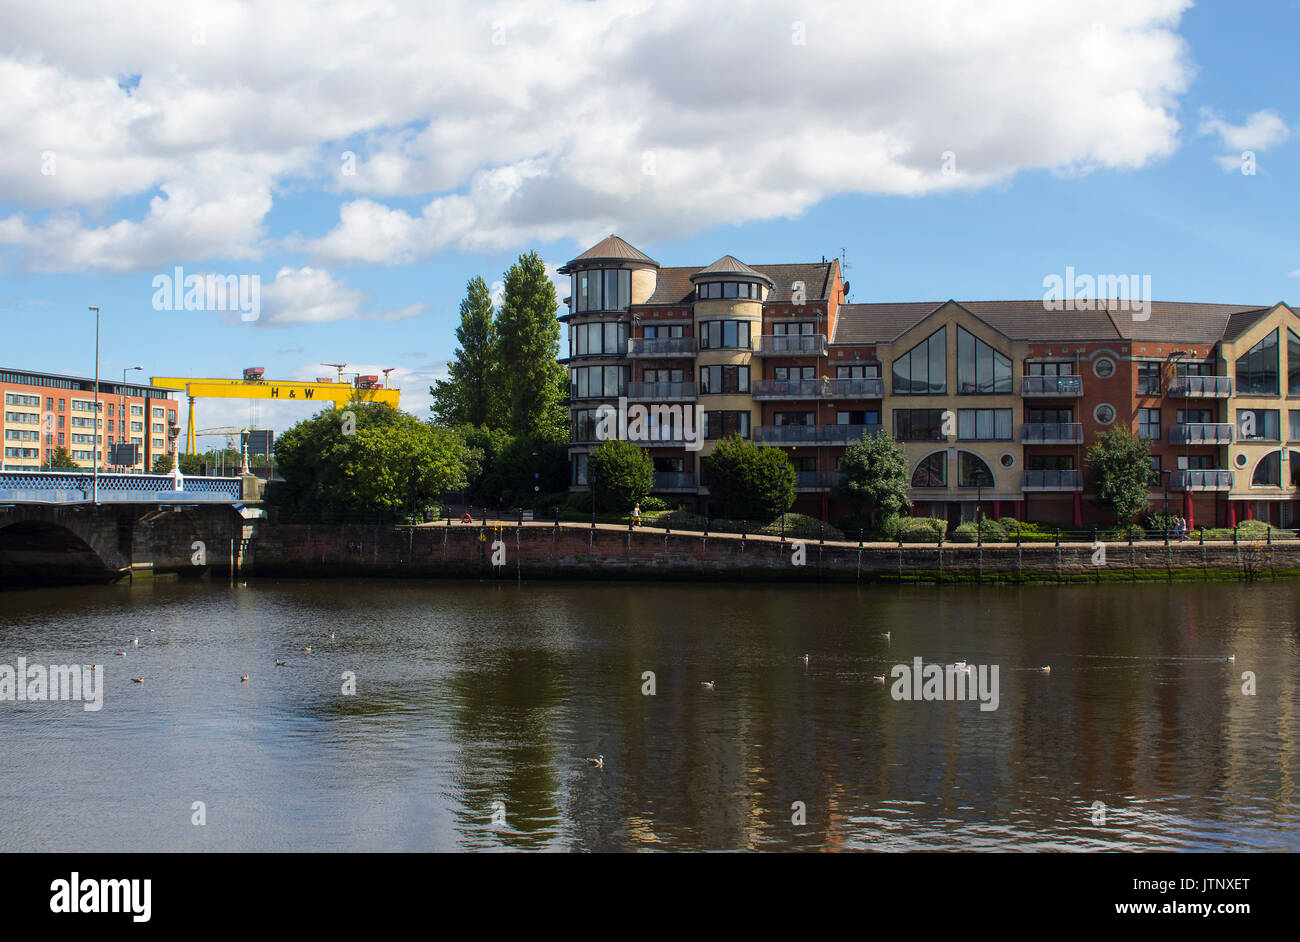 Apartments on the bank of the River Lagan beside the Queen's Bridge in central Belfast with the iconic Harland and Wolff shipyard cranes overlooking t - Stock Image